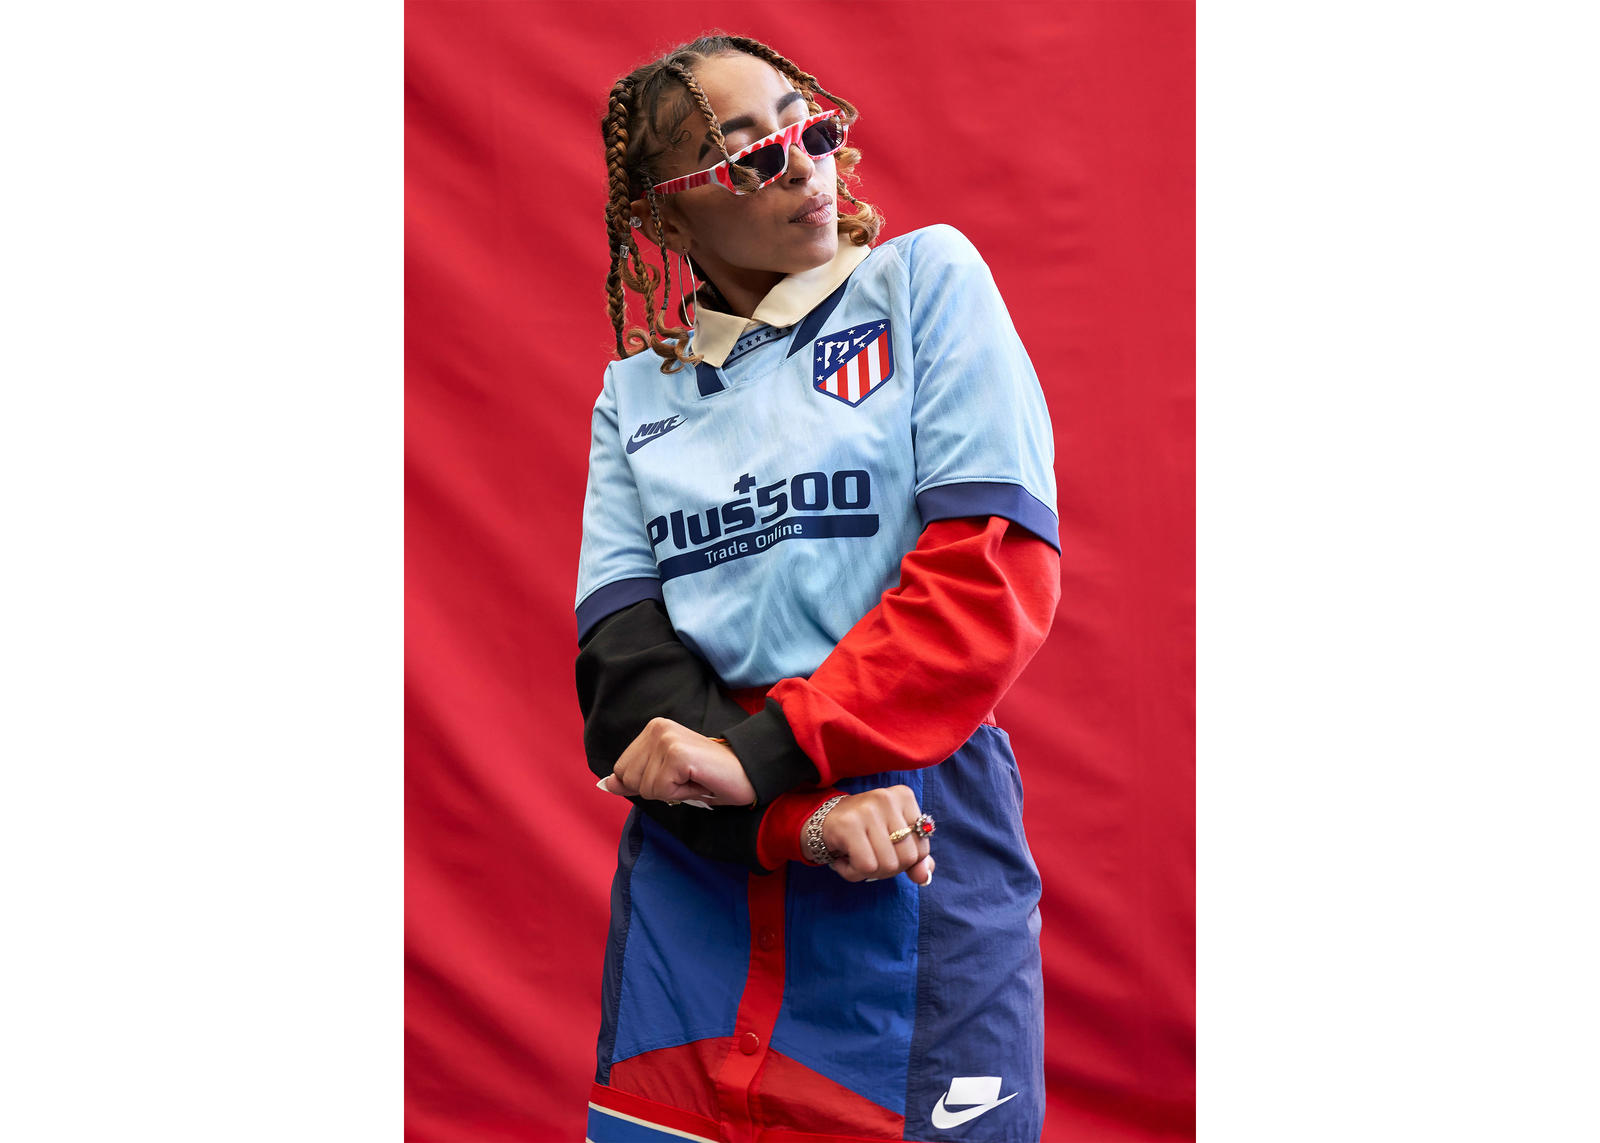 Atletico de Madrid Third Kit 2019-20 0